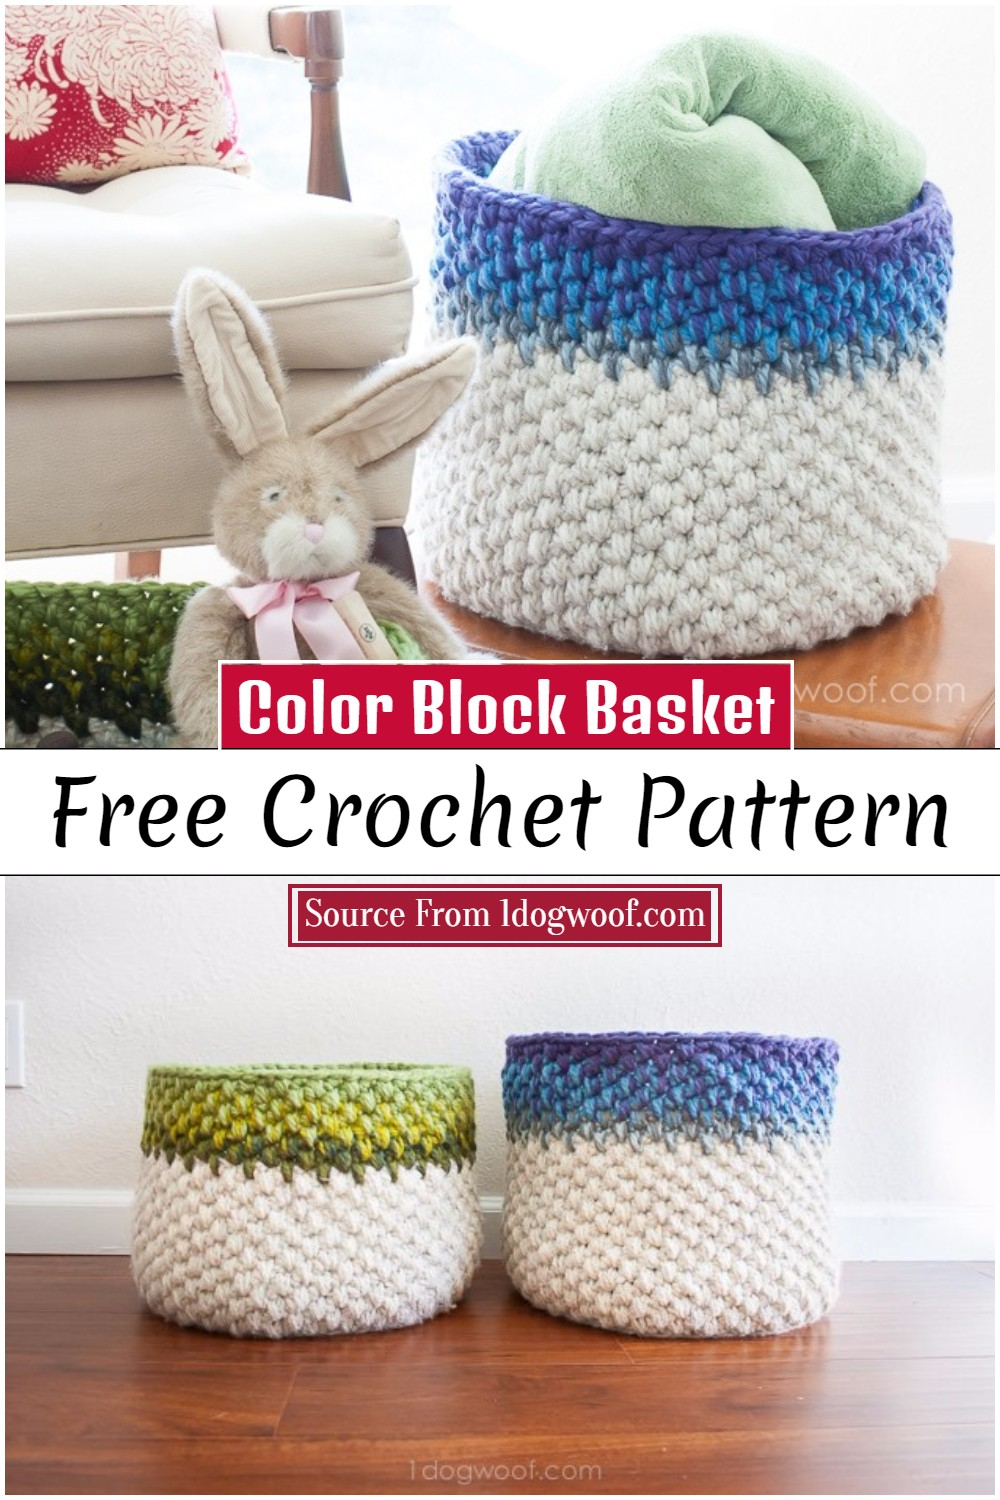 Crochet Color Block Crochet Basket Pattern